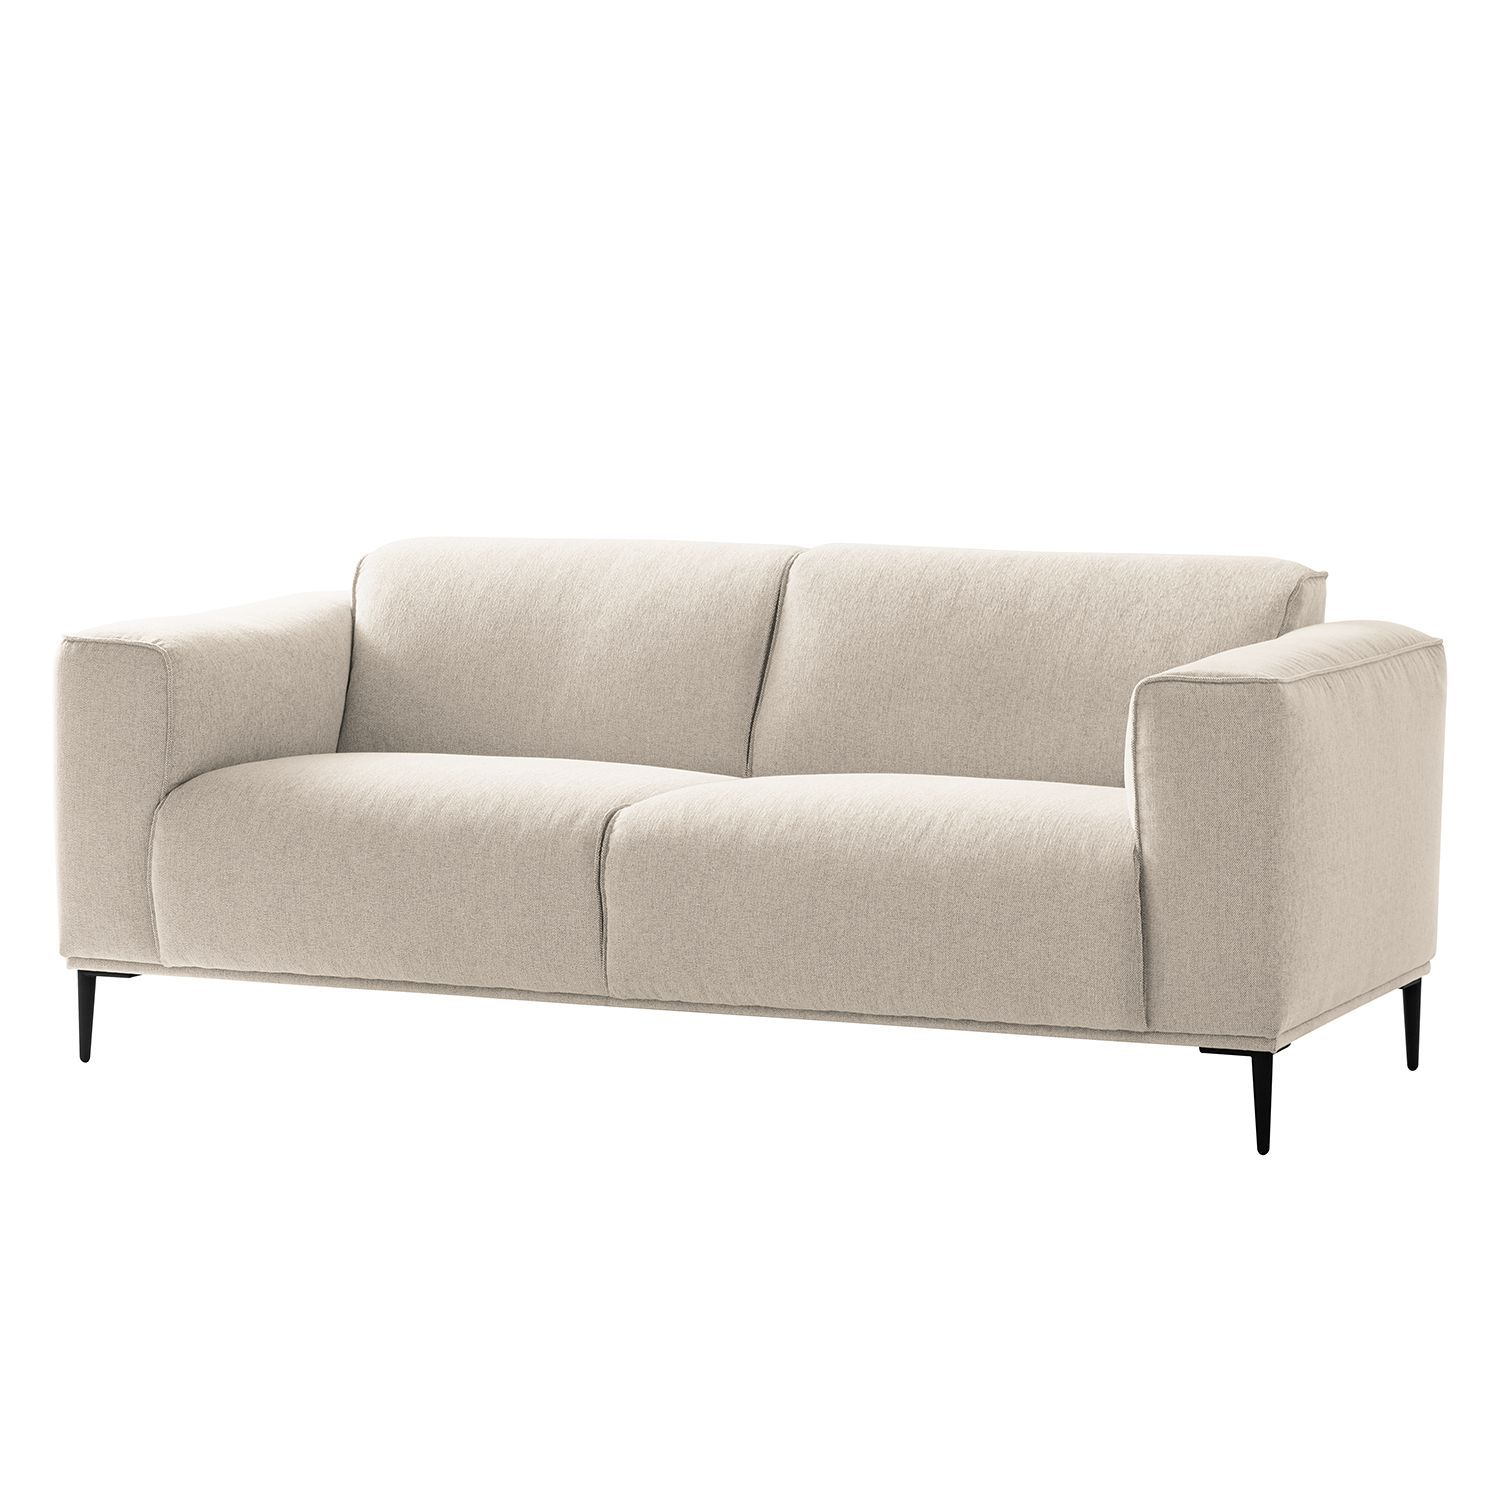 Sofa Crawford 2 5 Sitzer Webstoff Buitenbanken Bank Interieurstyling